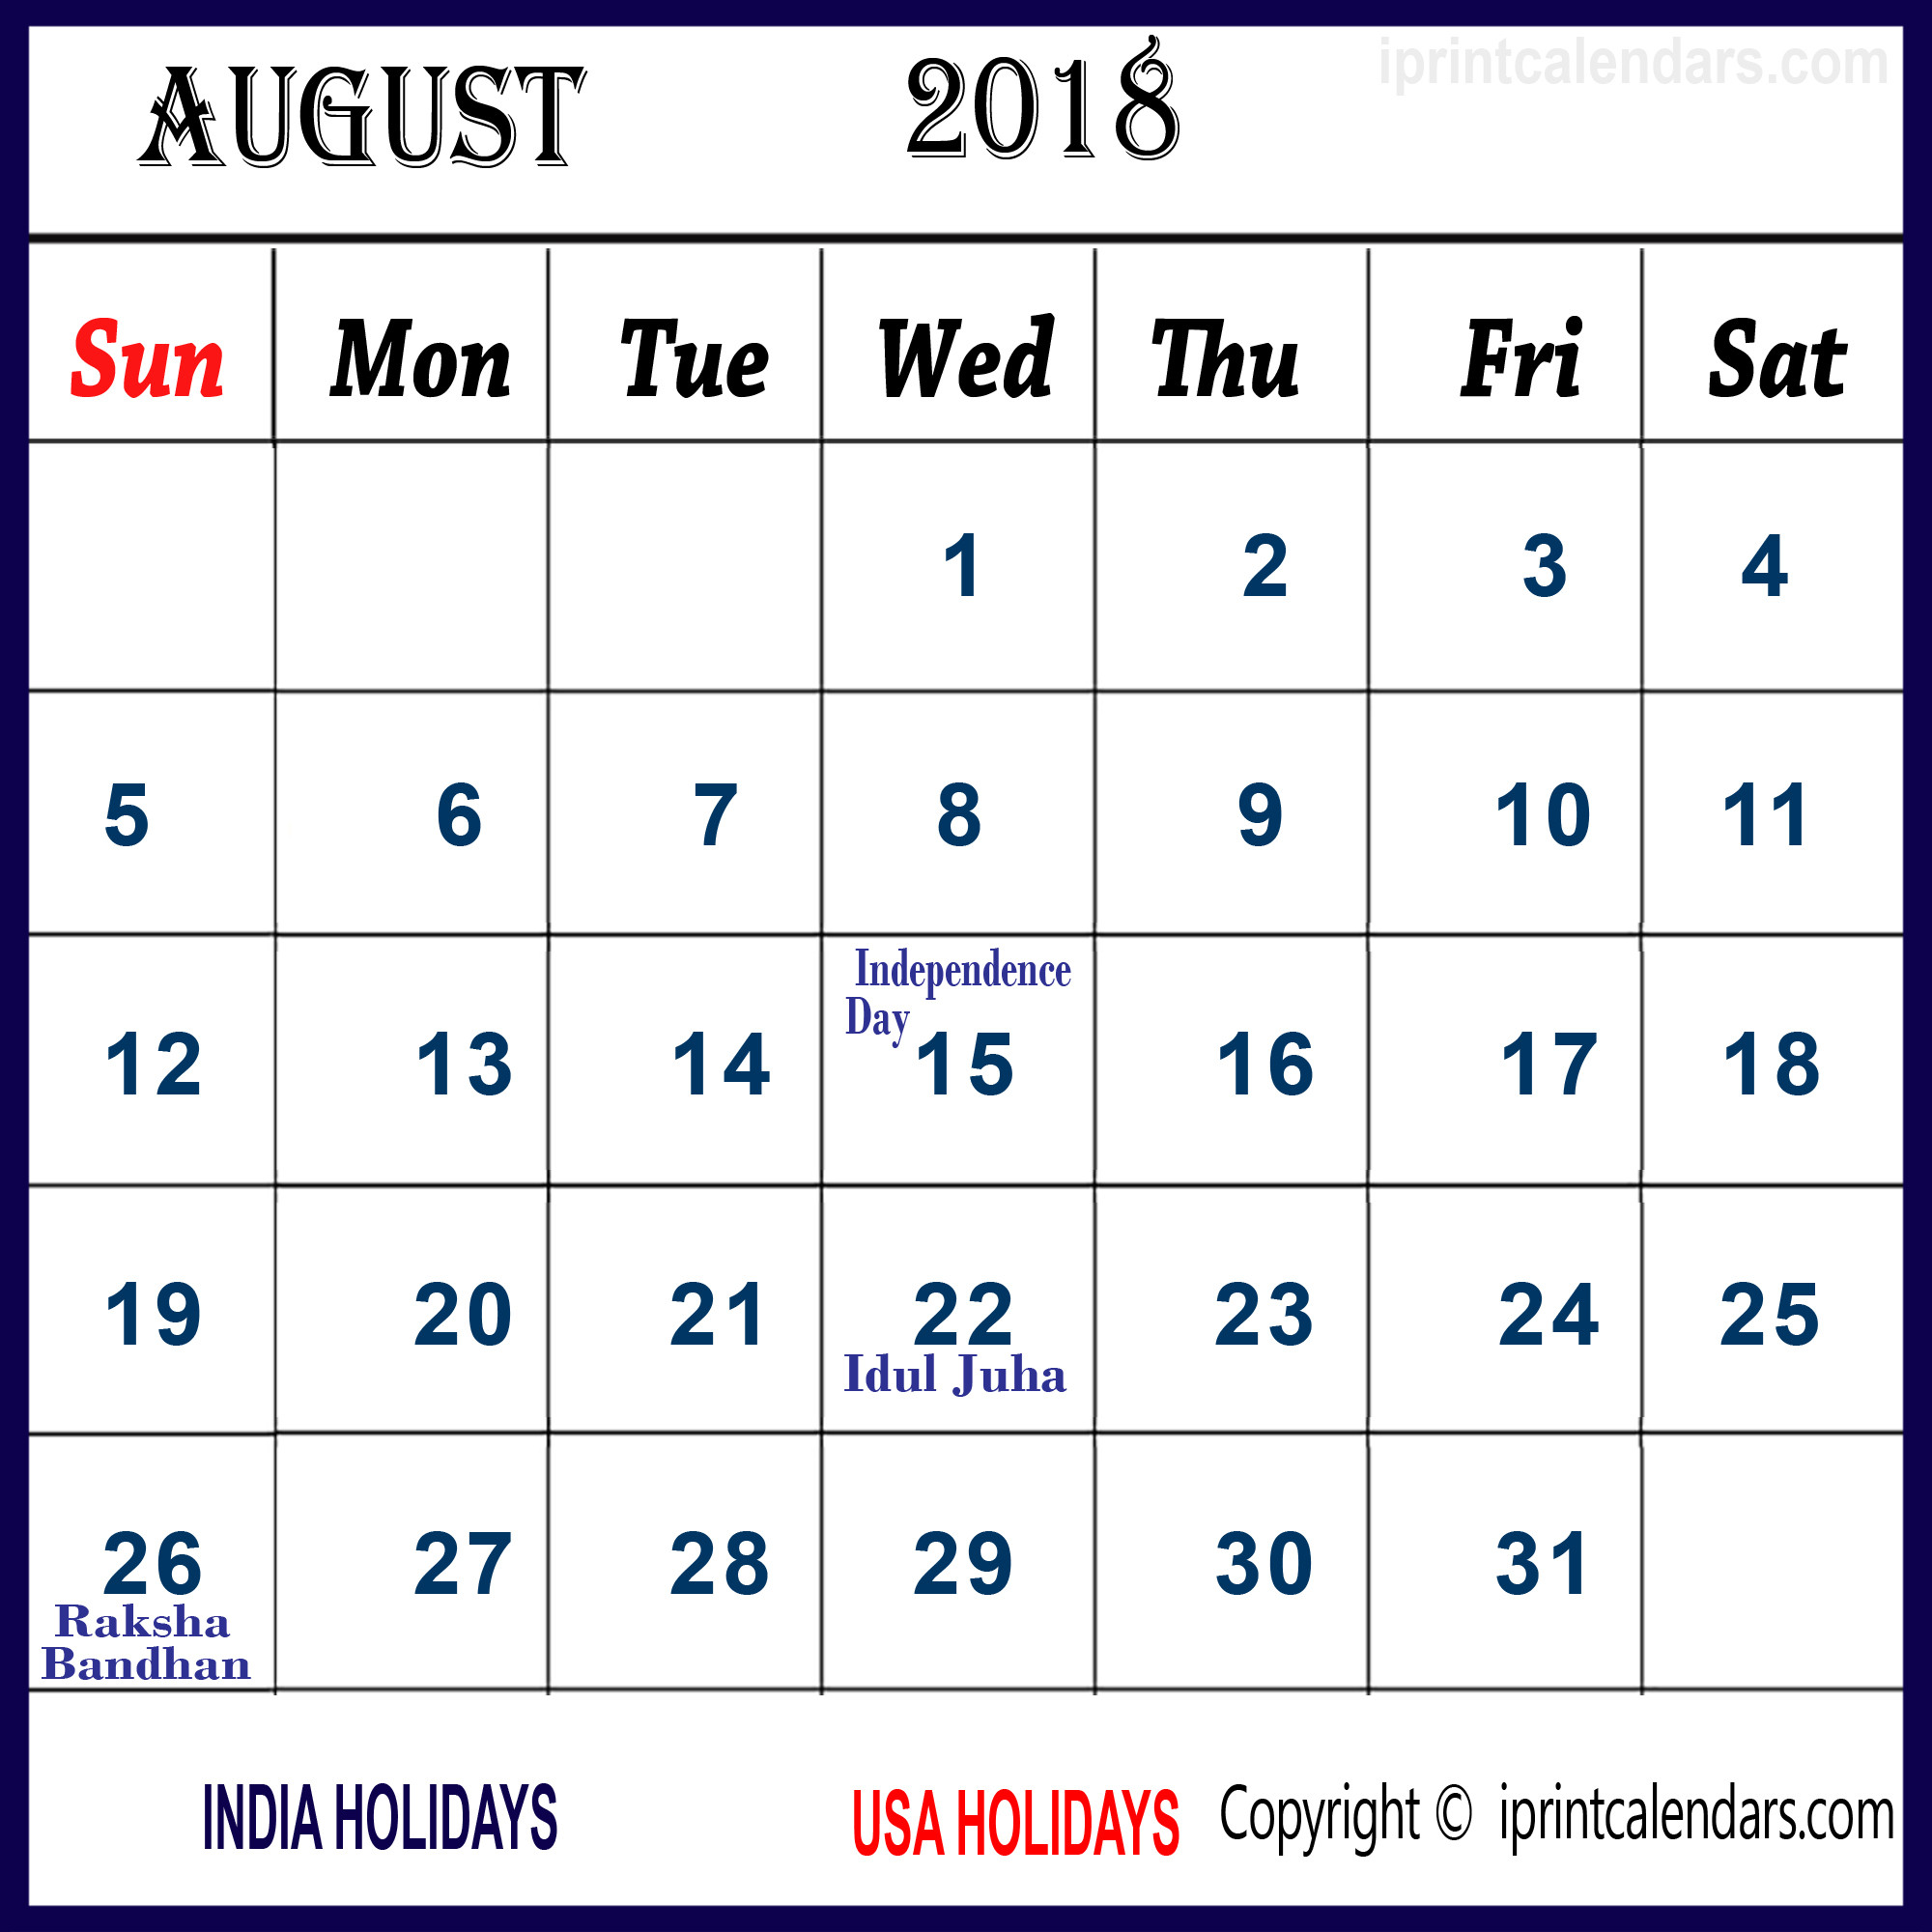 August 2018 Calendar Decorative